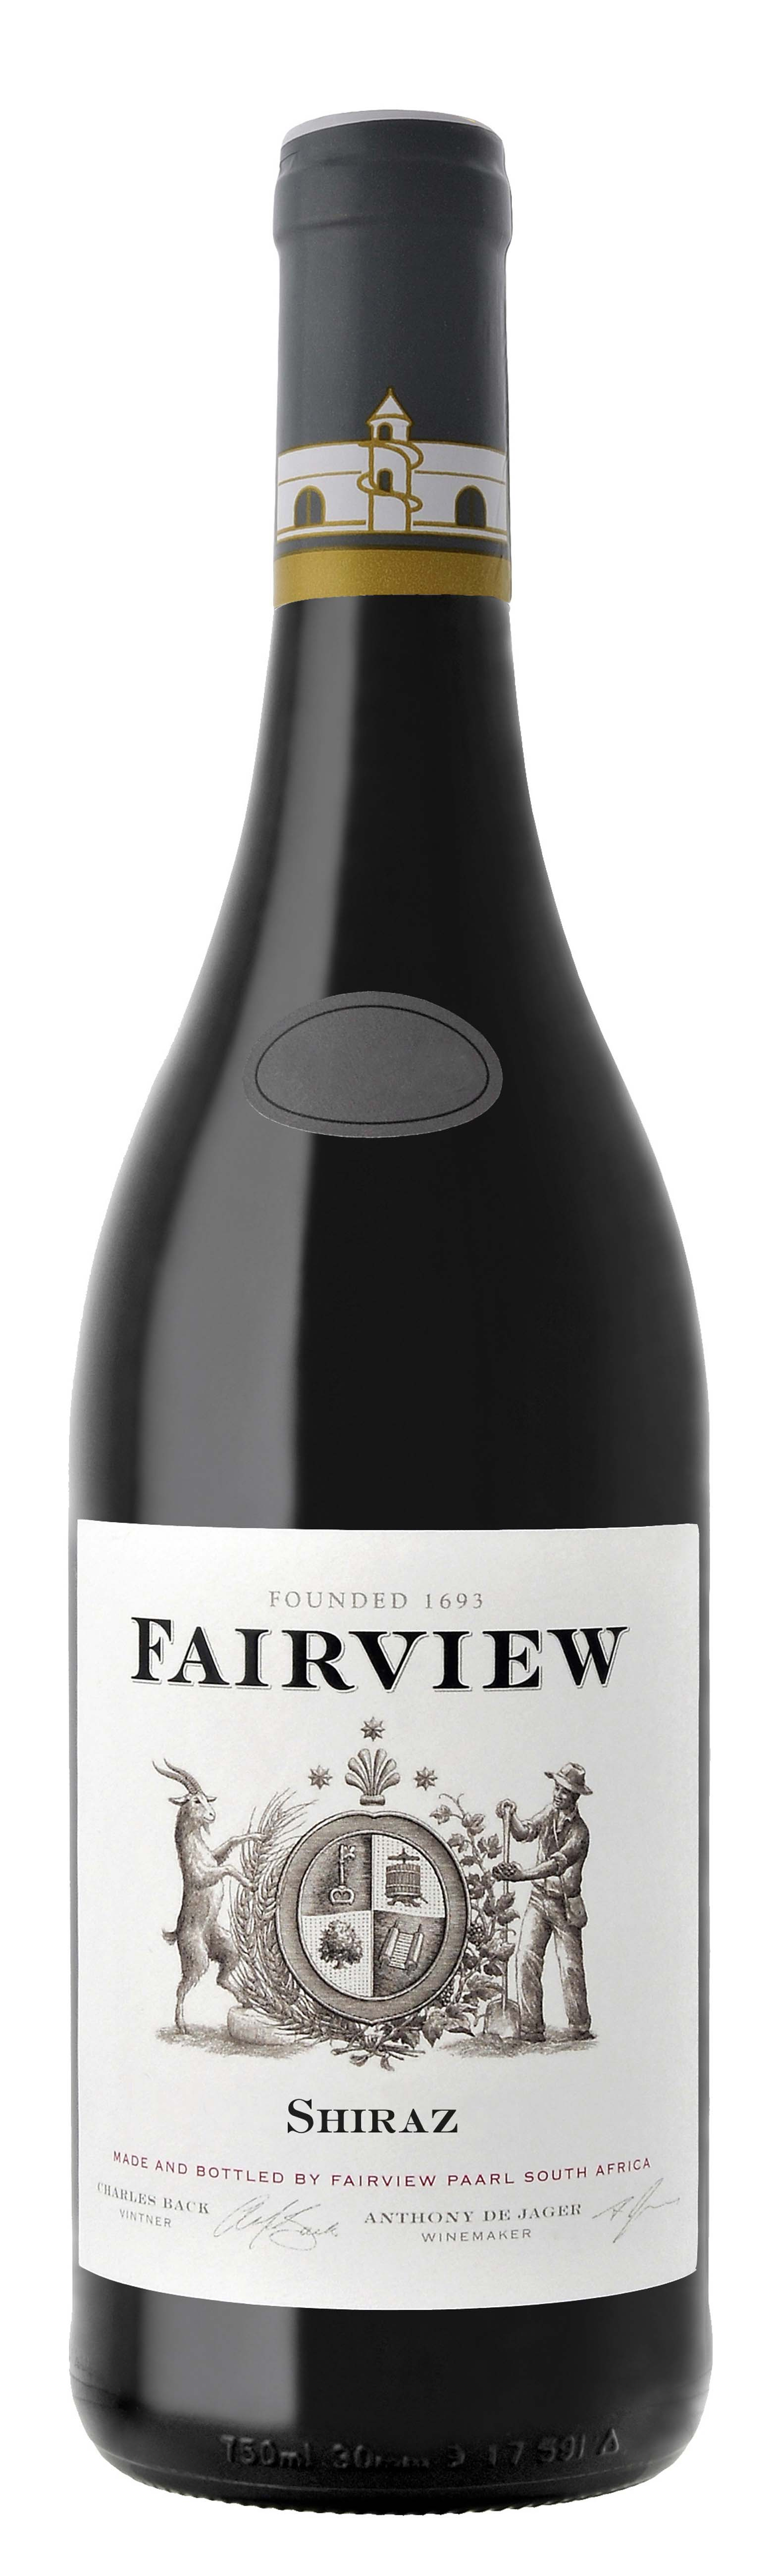 Fairview, Shiraz 2013